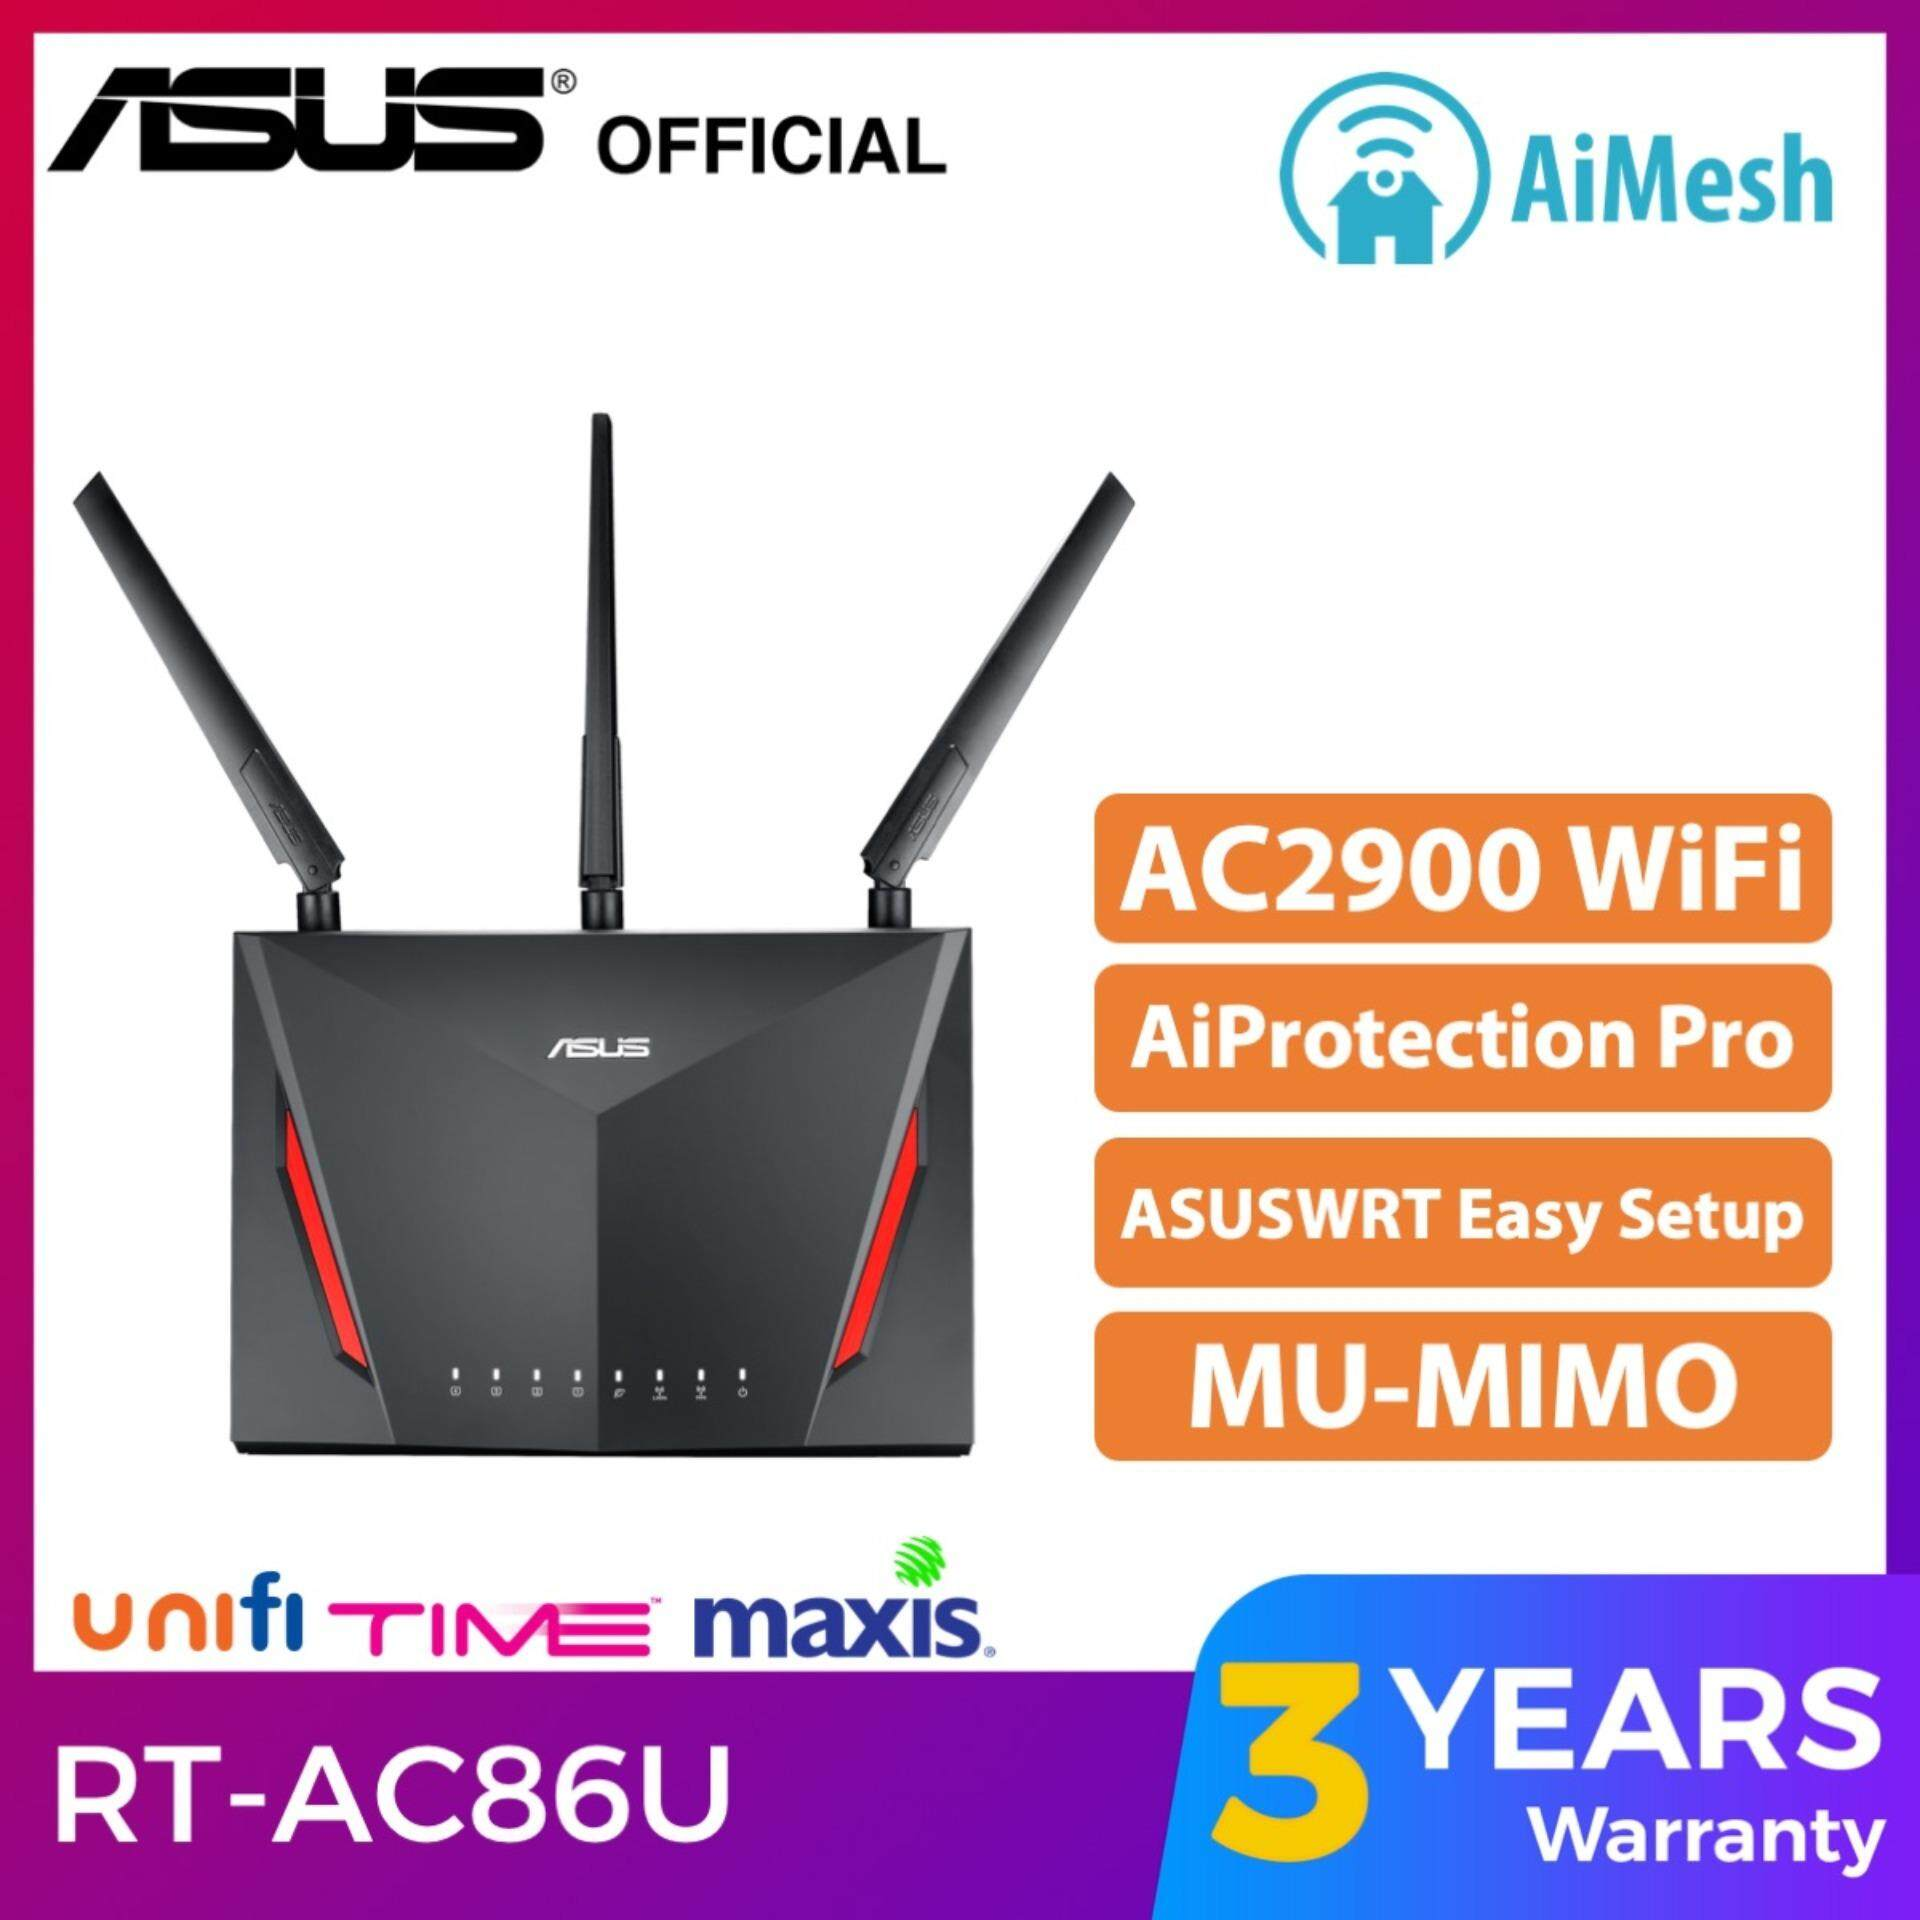 ASUS RT-AC86U AC2900 AiMesh WiFi Router MU-MIMO Unifi Wireless Router RT  AC86U 800Mbps